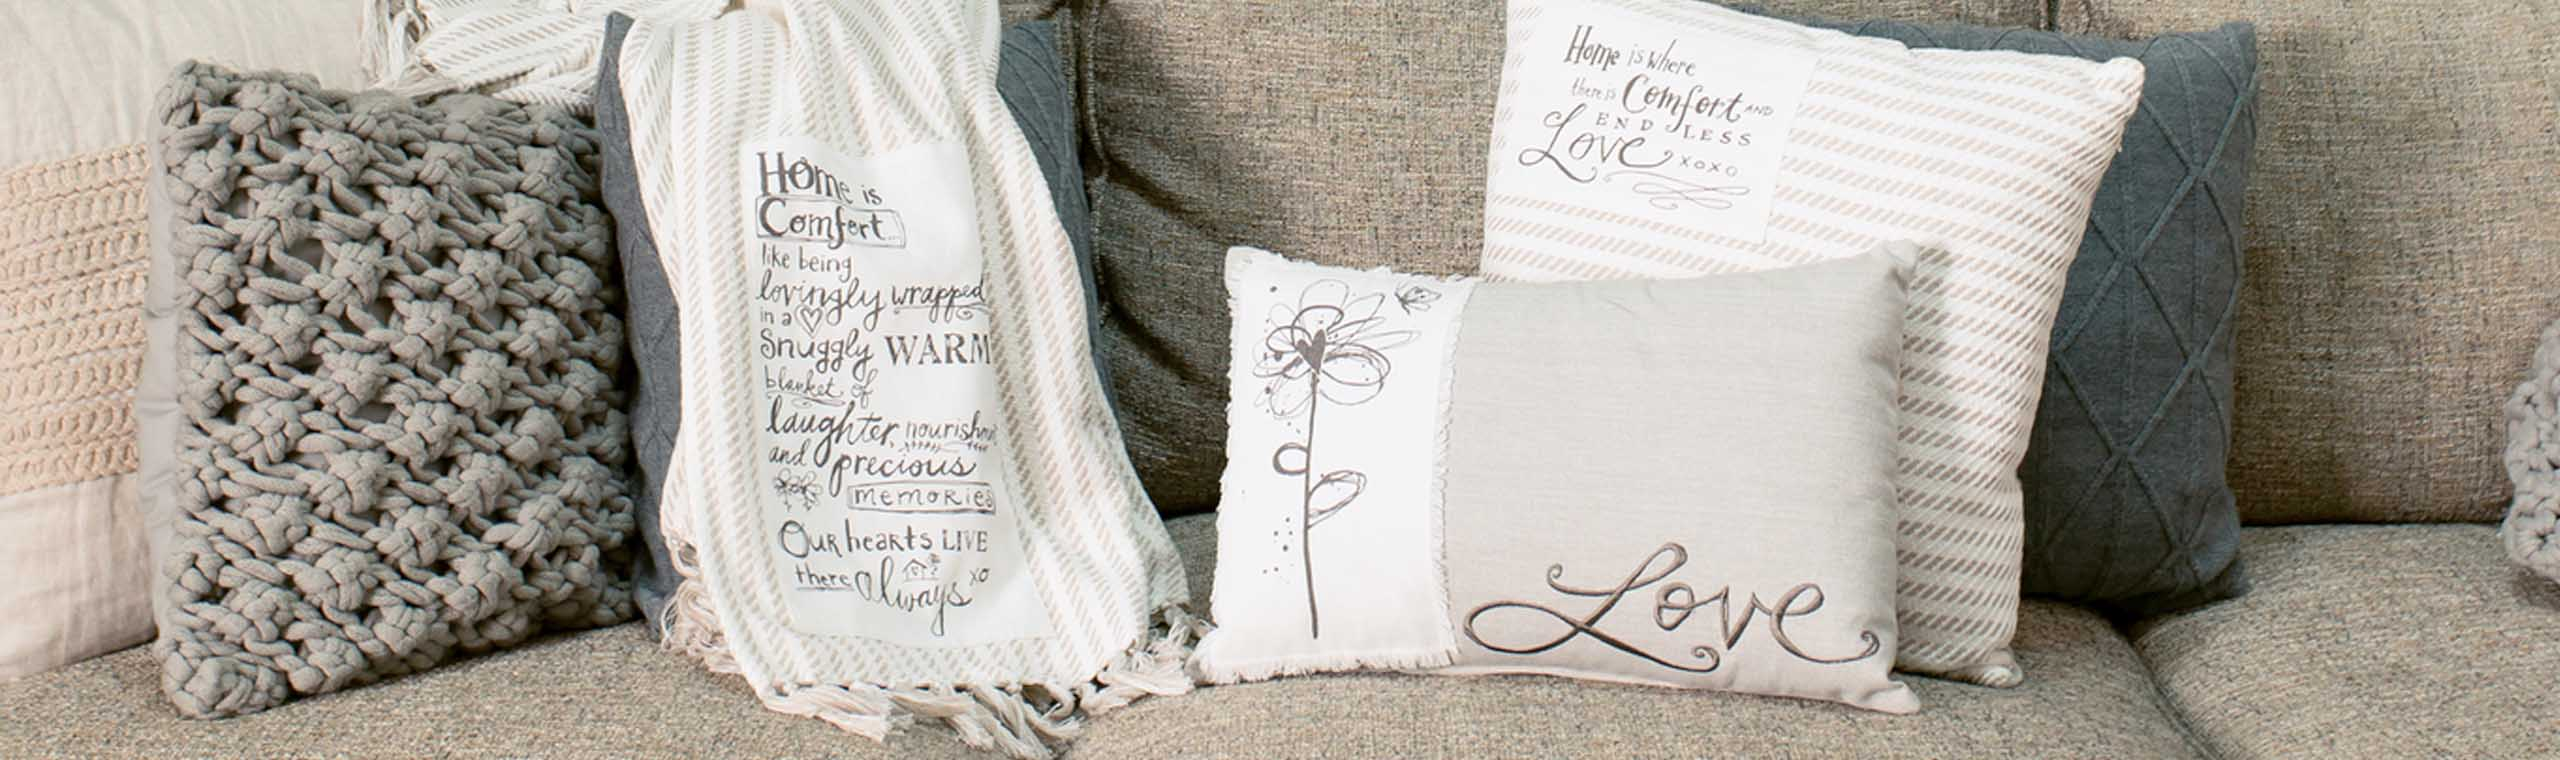 Soft white and gray pillows and blanket draped on living room couch